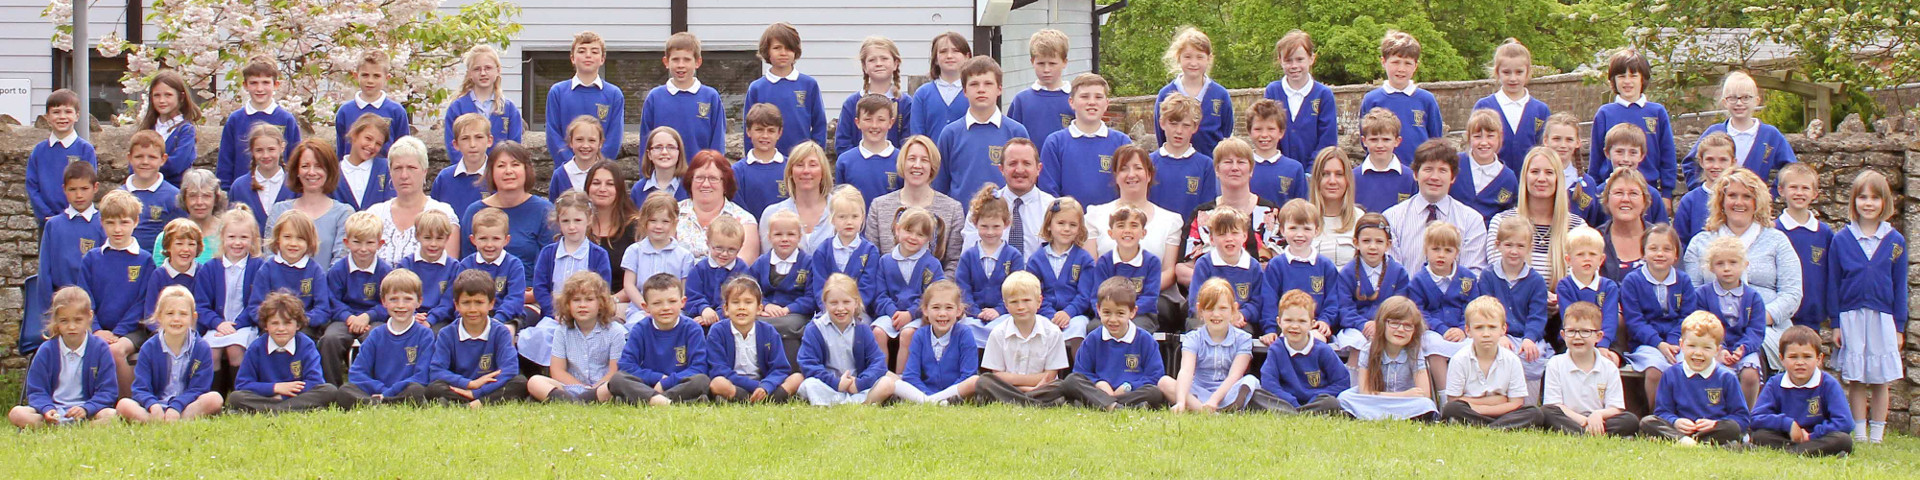 Whole School photograph – 2016